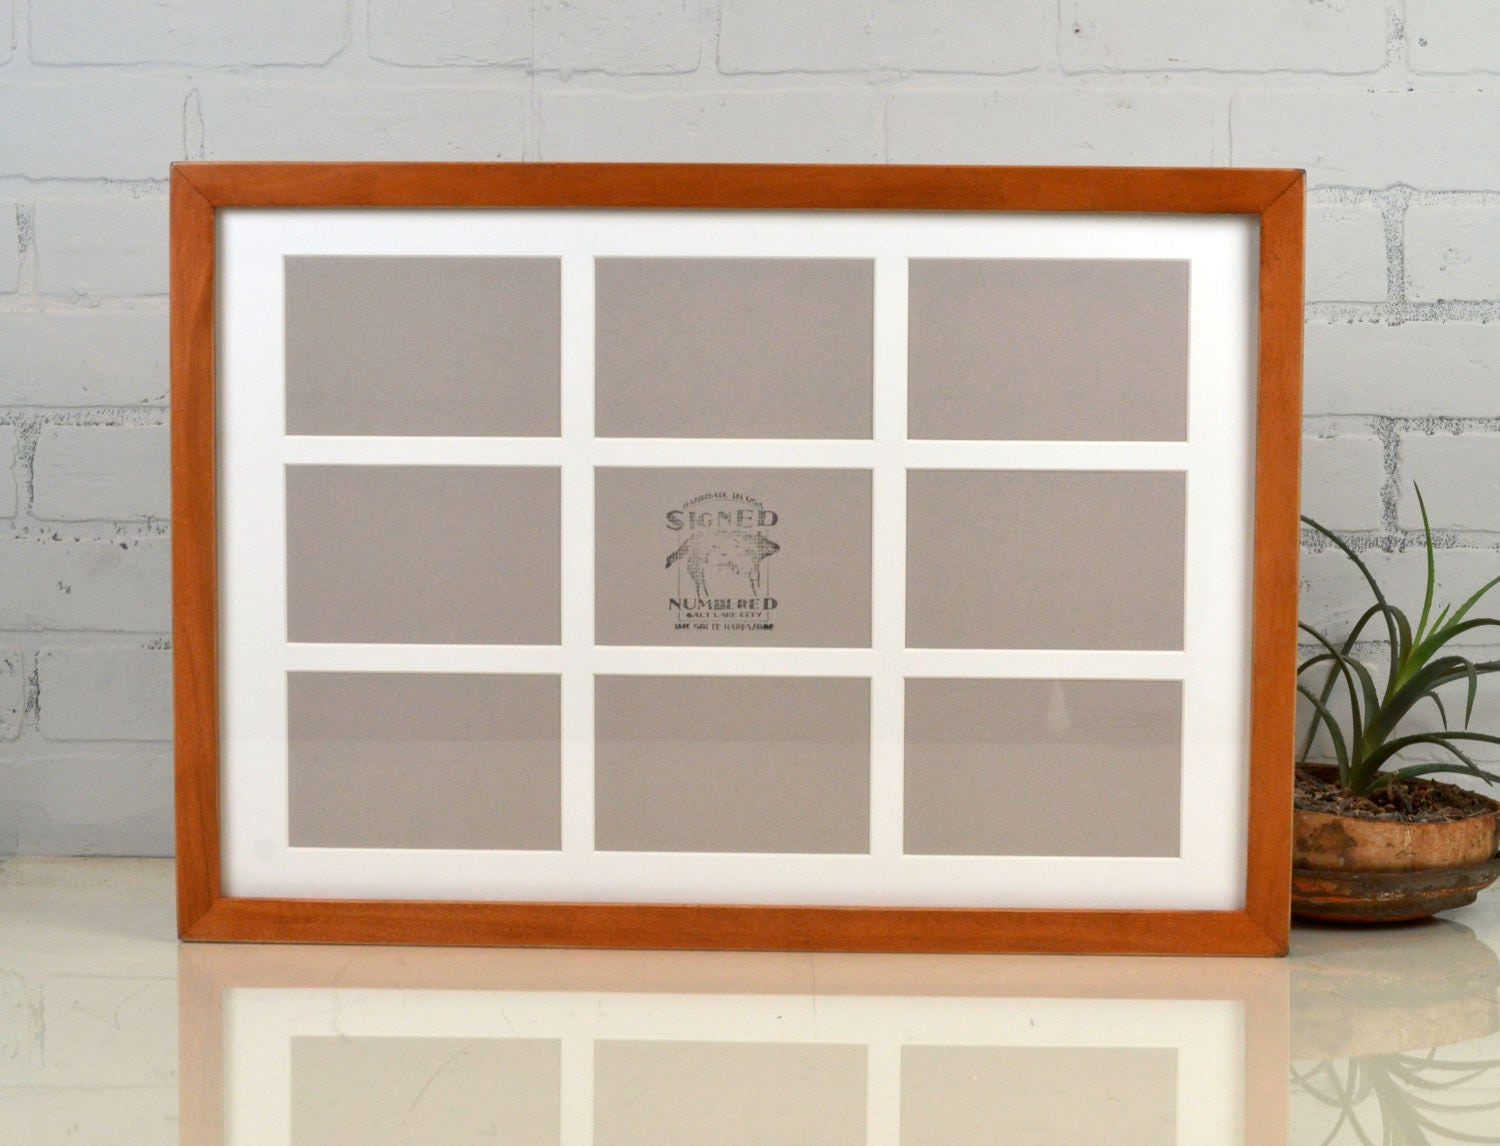 Collage Frame 15x22 1x1 Flat Style with Mat Windows for (9) 4x6 ...